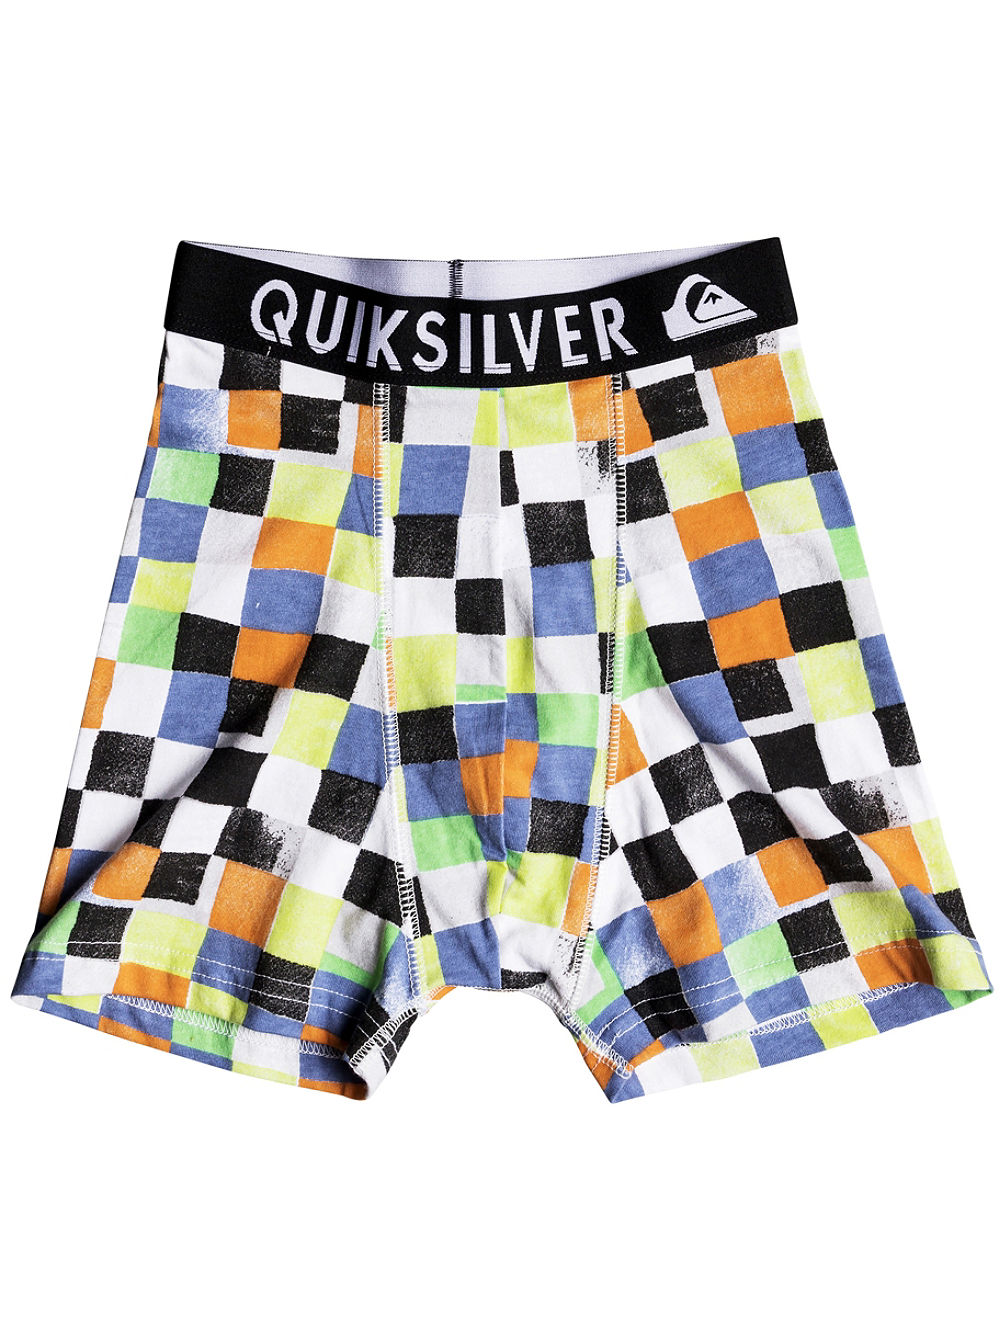 quiksilver poster boxershorts boys online kaufen bei blue. Black Bedroom Furniture Sets. Home Design Ideas